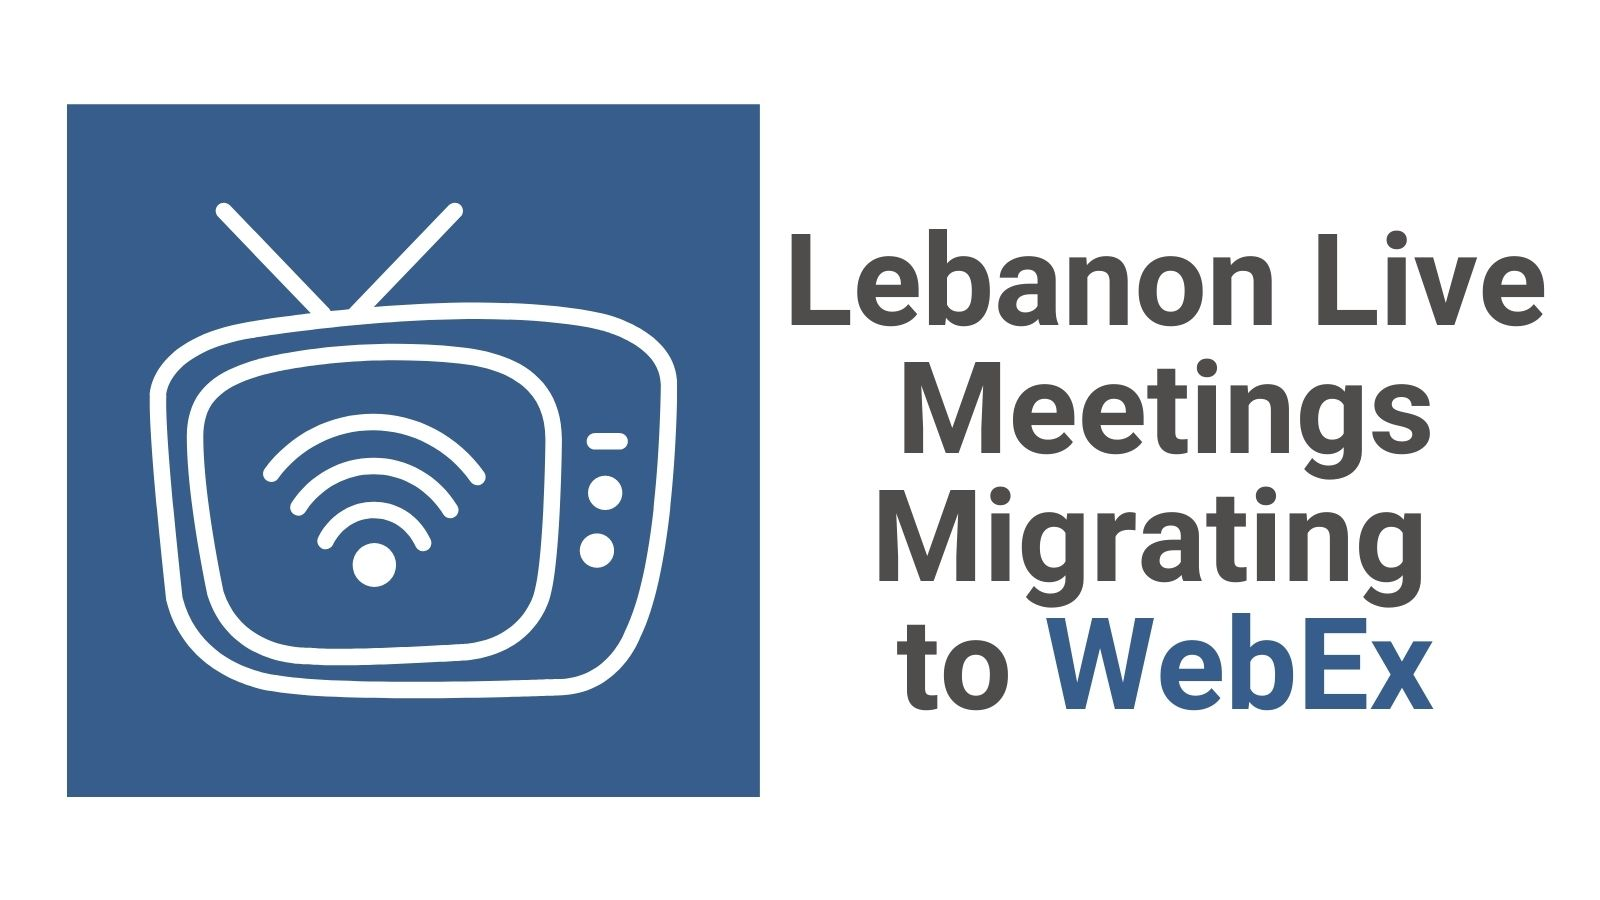 Lebanon Live meetings migrating to WebEx